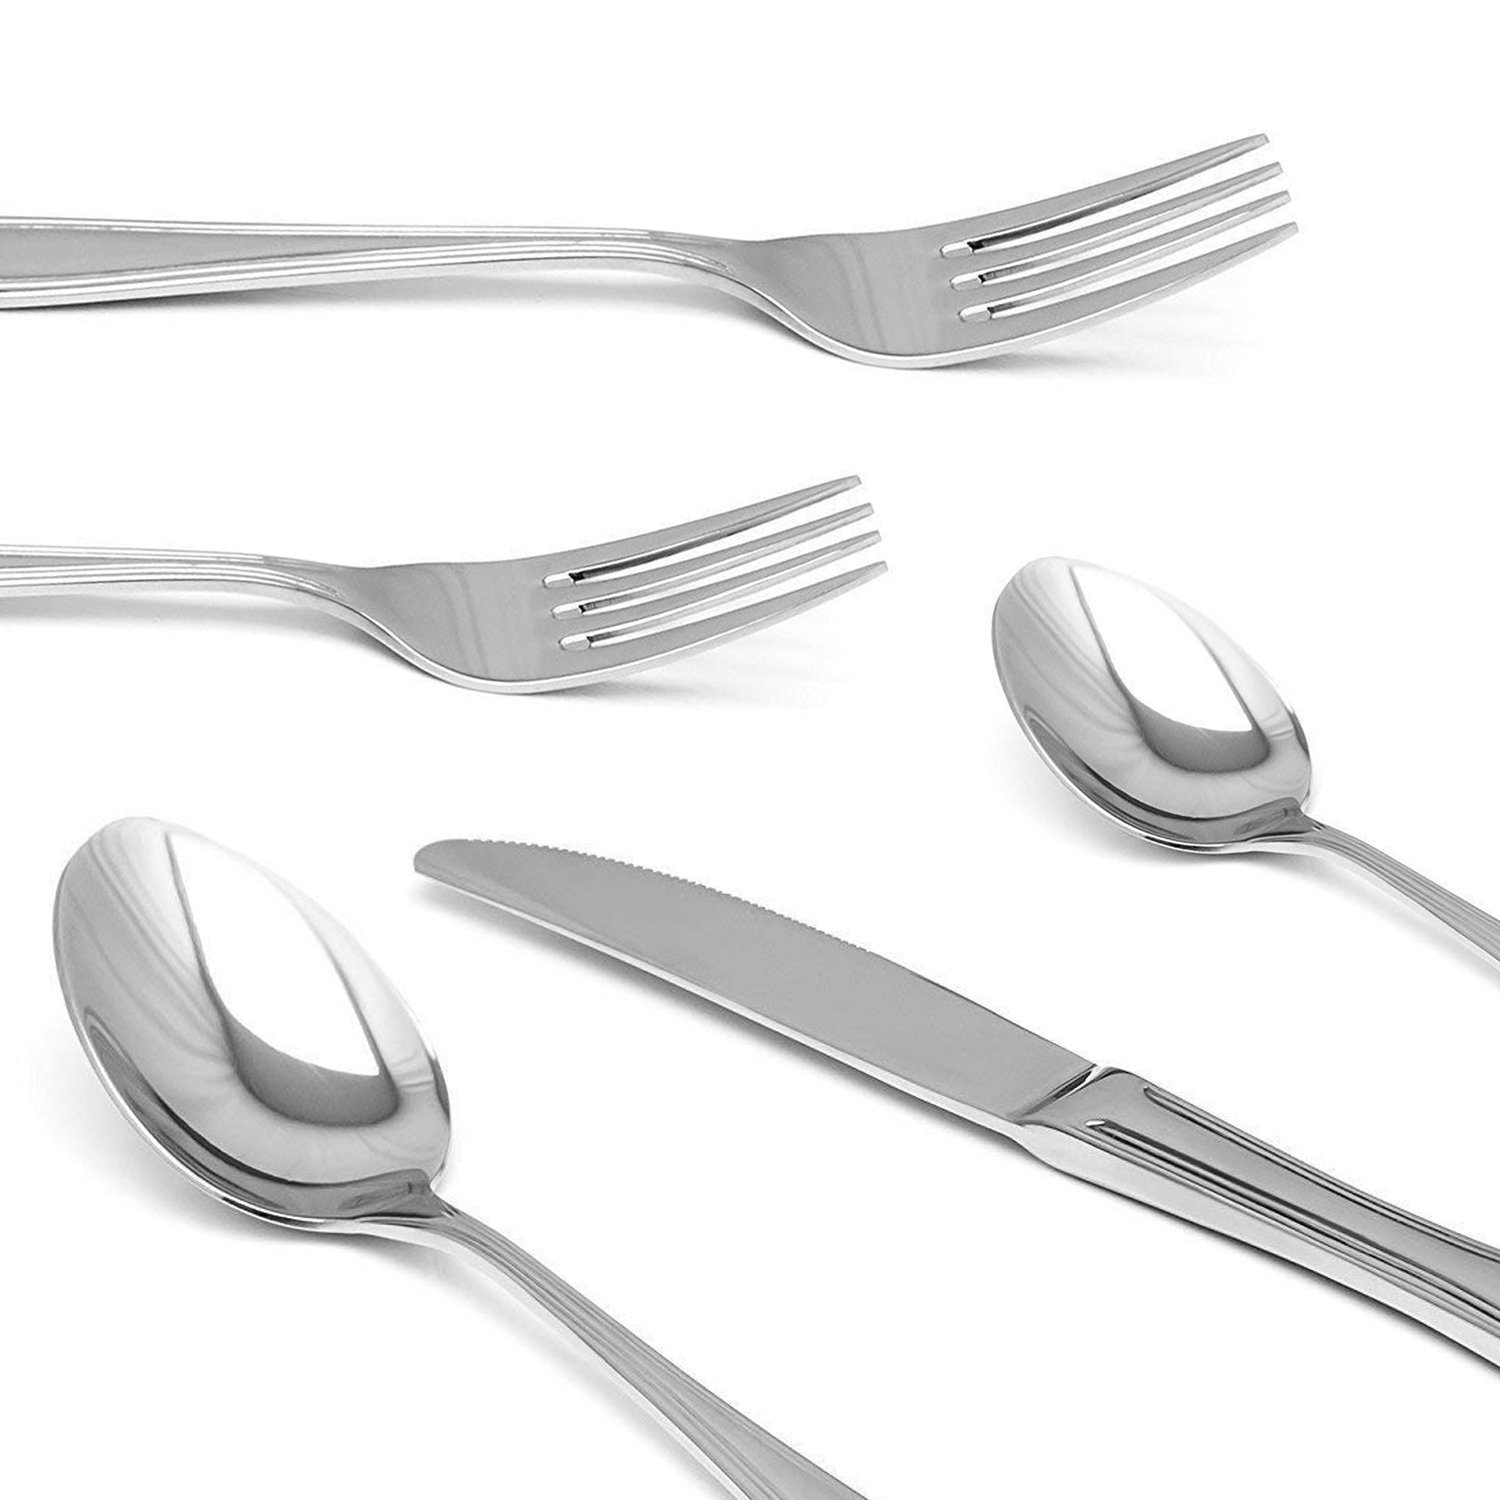 Royal 20-Piece Silverware Set - 18/10 Stainless Steel Utensils Forks Spoons Knives Set, Mirror Polished Cutlery Flatware Set by Royal (Image #3)